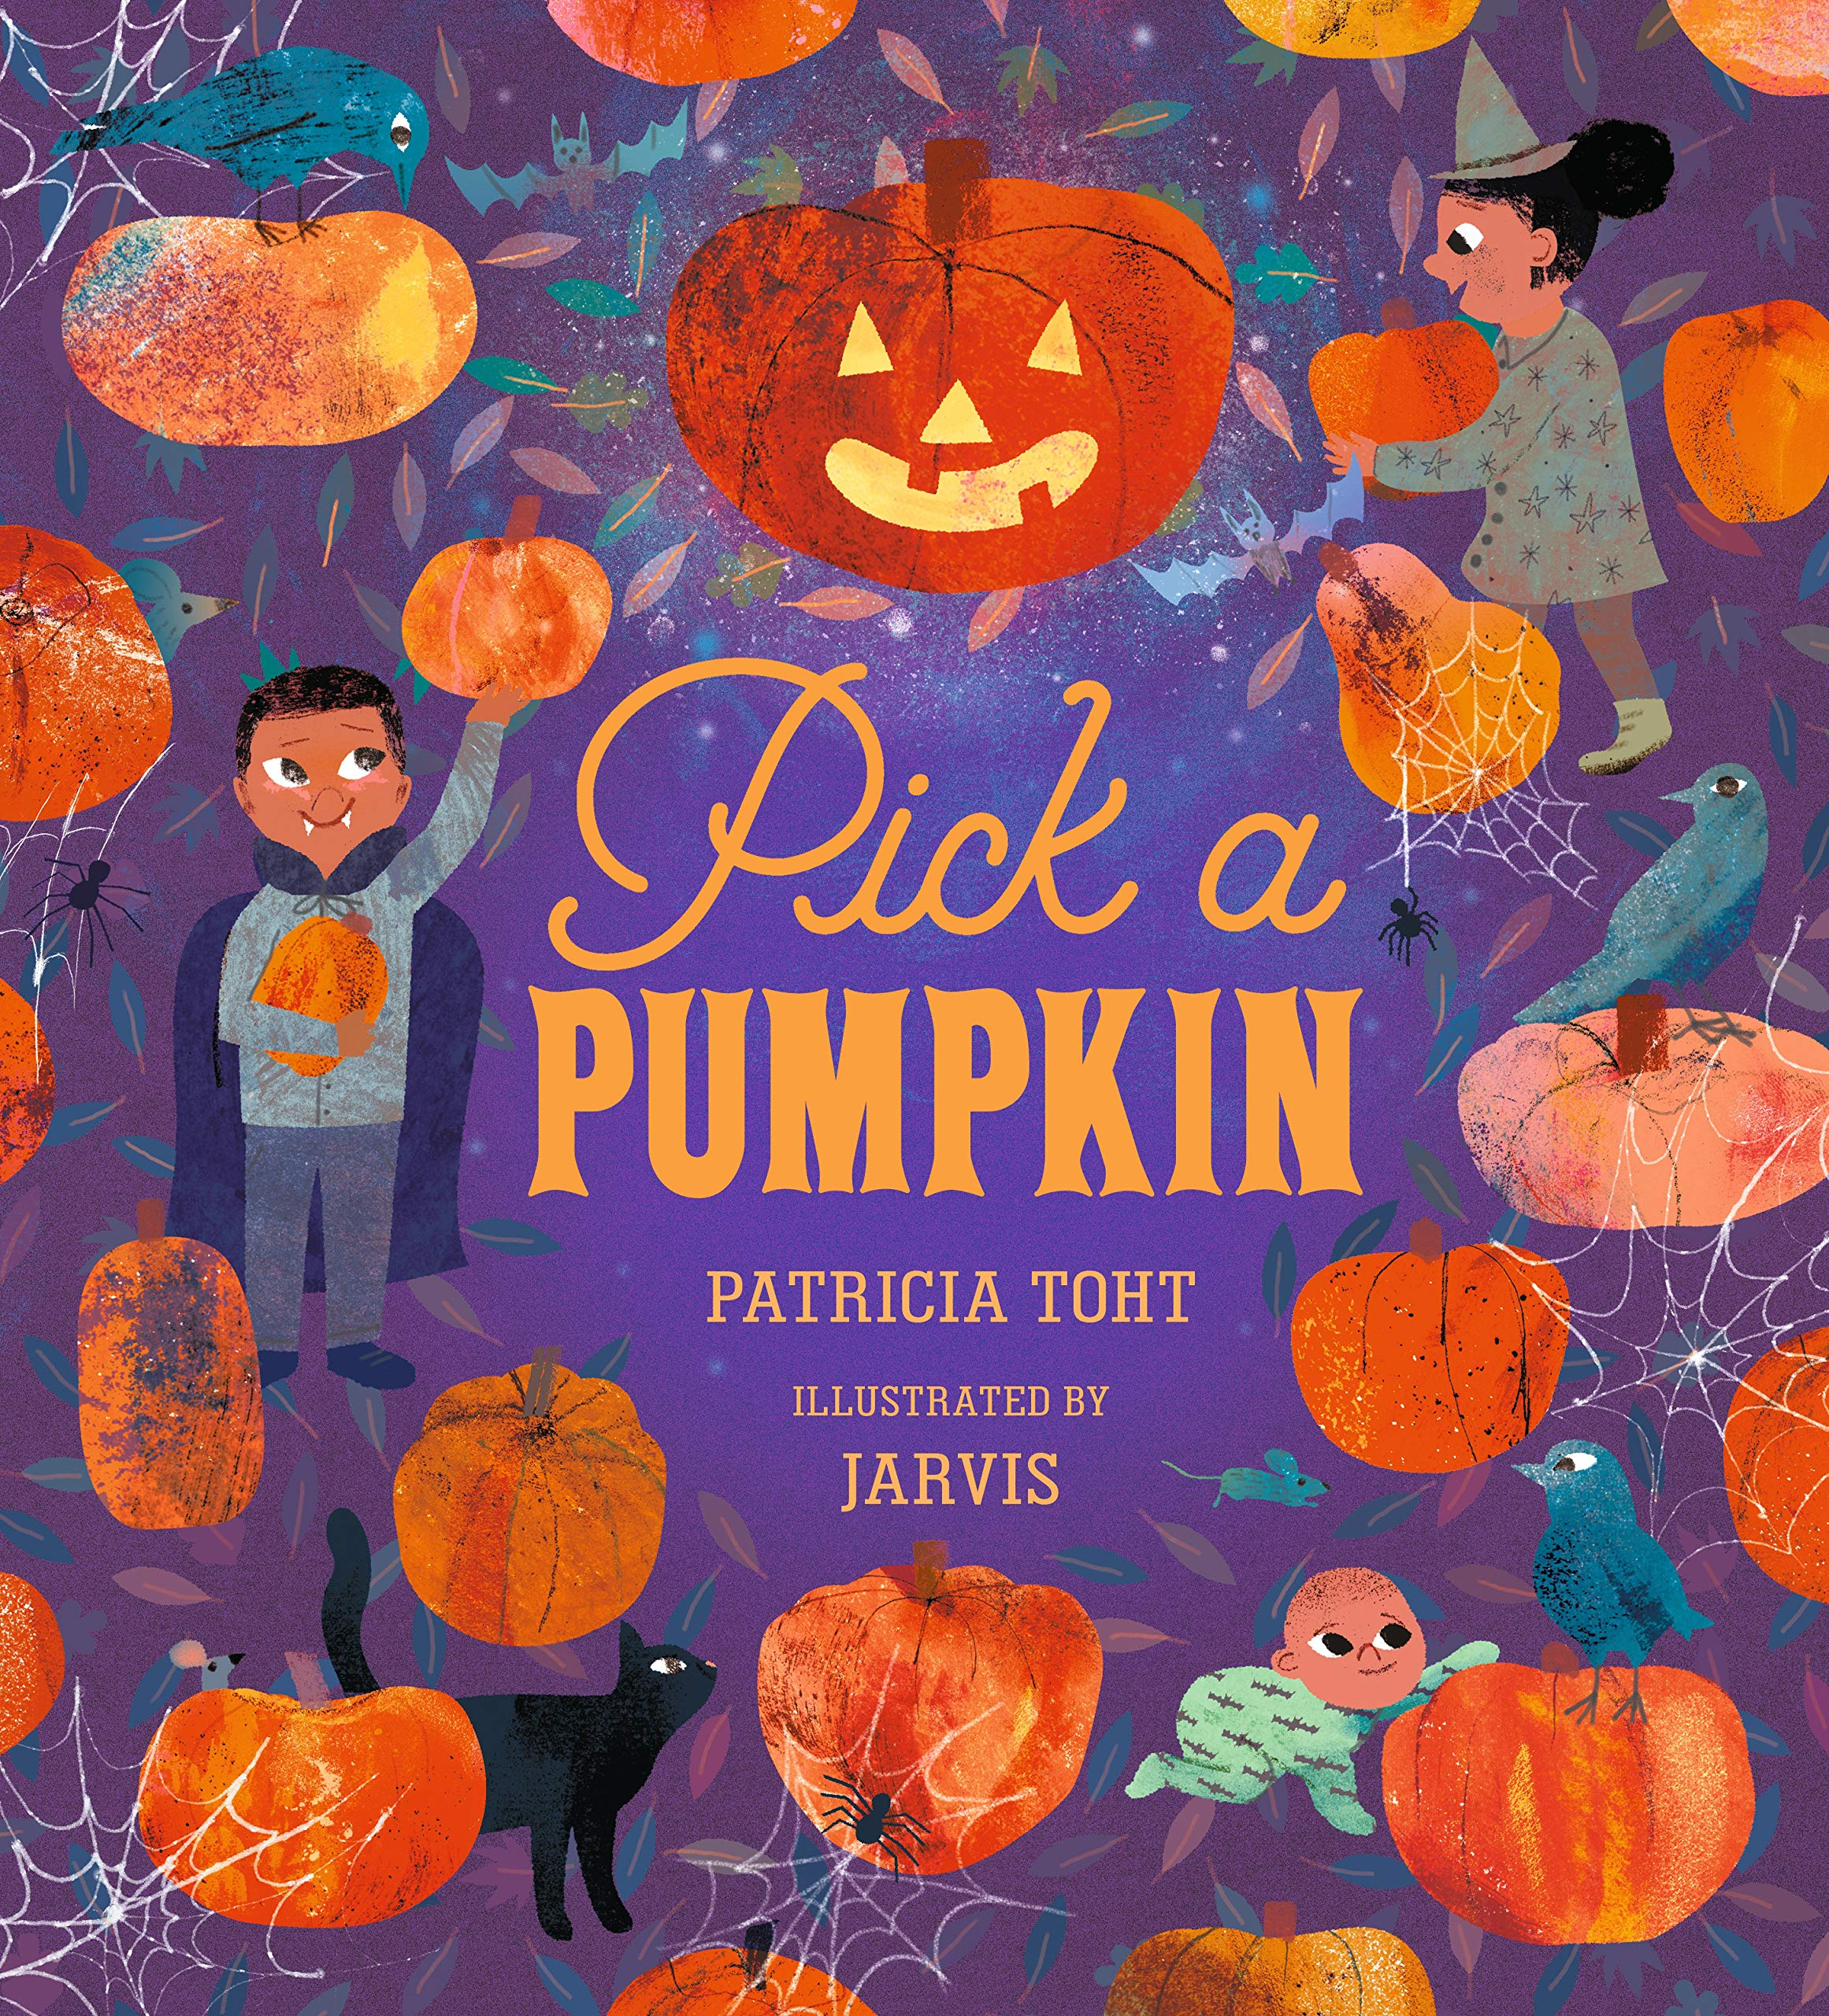 Pick a Pumpkin: Toht, Patricia, Jarvis: 9781536207644: Amazon.com: Books